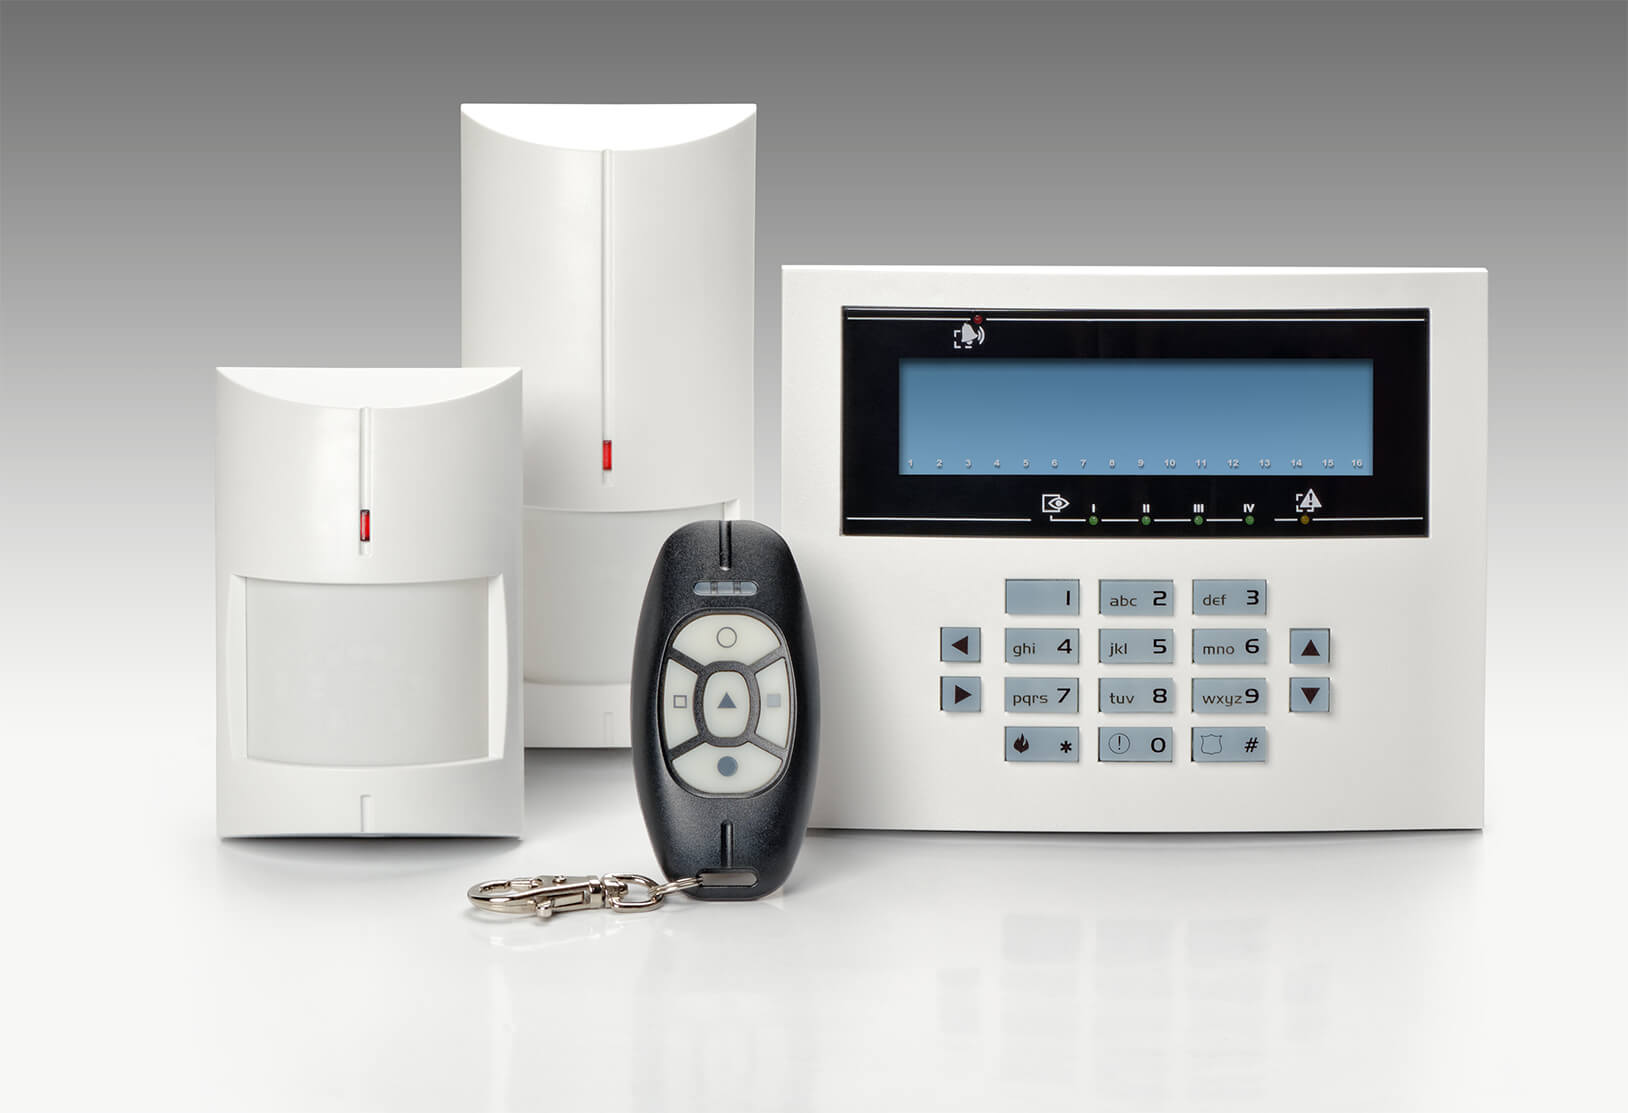 Commercial Burglar Alarms For Business in Camberwell SE16  - Local Camberwell SE16 burglar alarm company.Call 02078872244 - Dedicated to Safety & Security. Companies, shops and homes ..